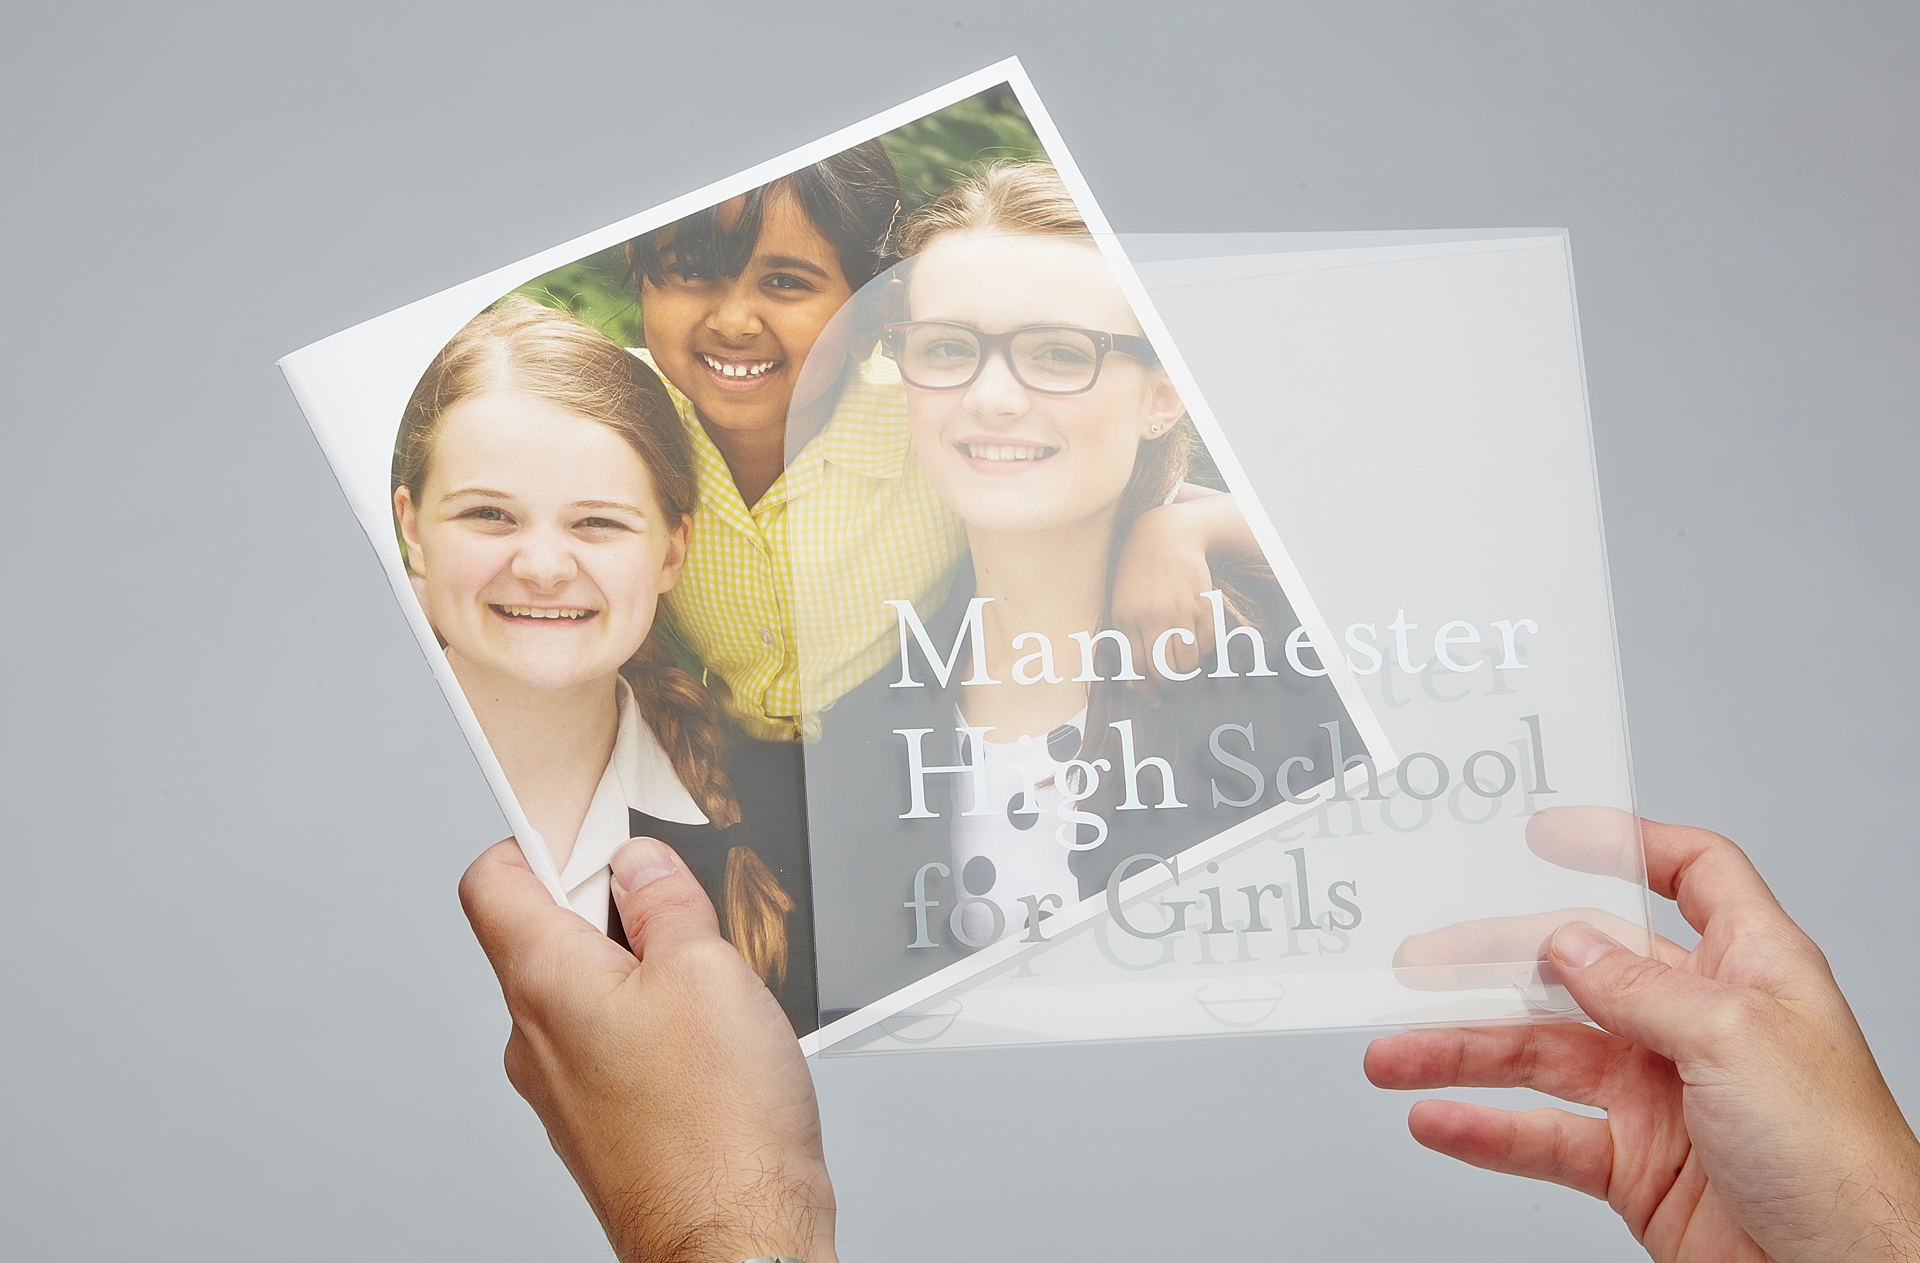 Manchester High School For Girls prospectus and sleeve